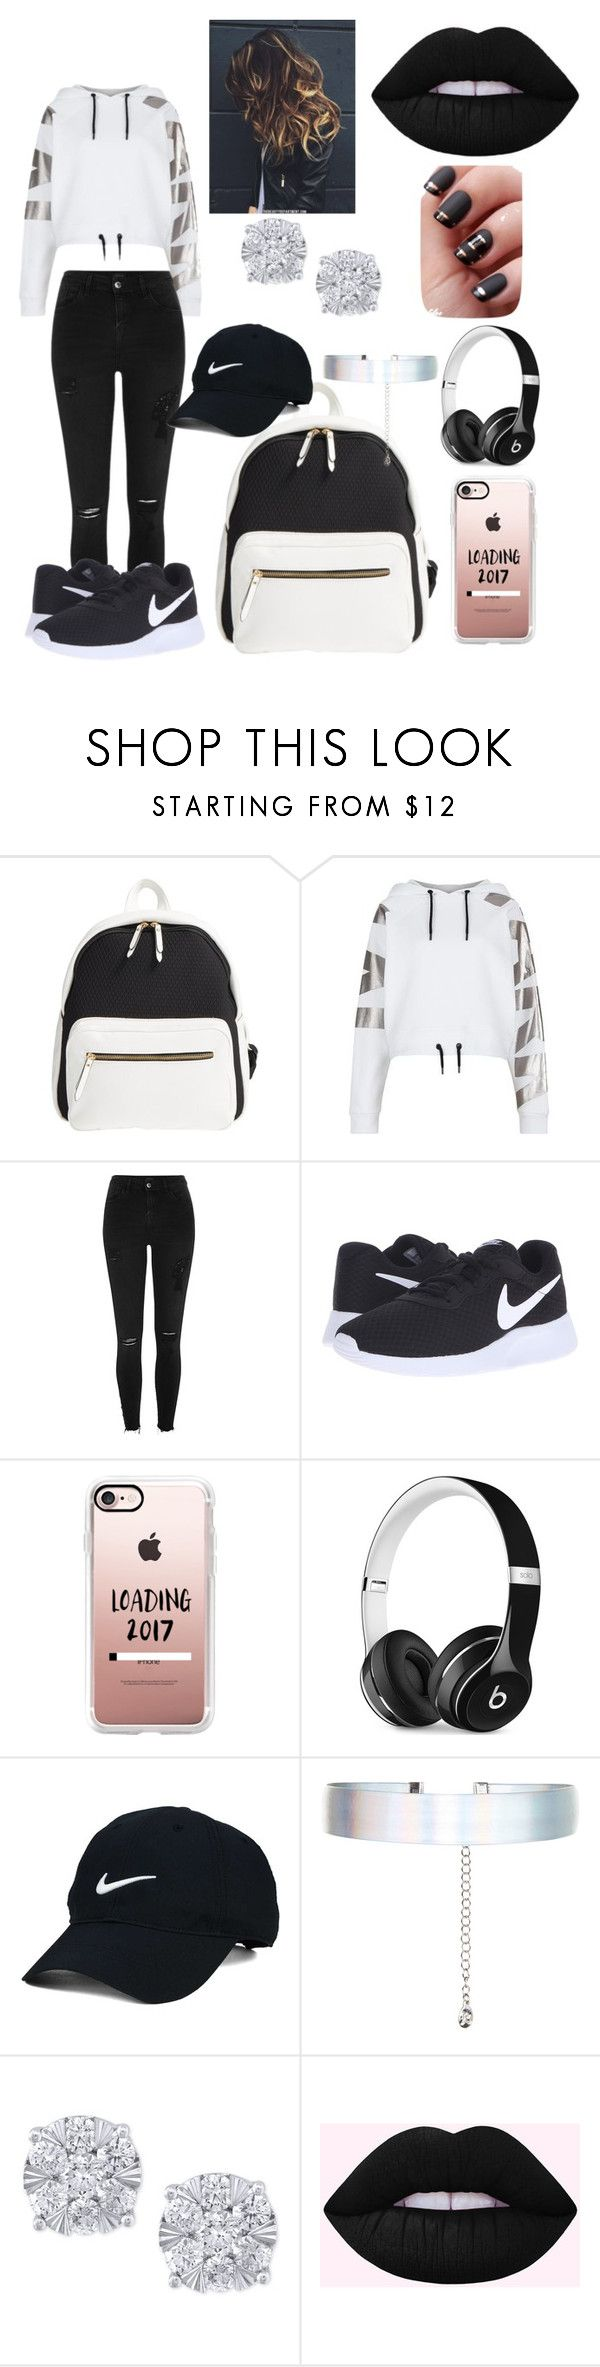 """Untitled #56"" by mari7078 ❤ liked on Polyvore featuring Poverty Flats, Ivy Park, River Island, NIKE, Casetify, Beats by Dr. Dre, Nike Golf, Accessorize and Effy Jewelry"